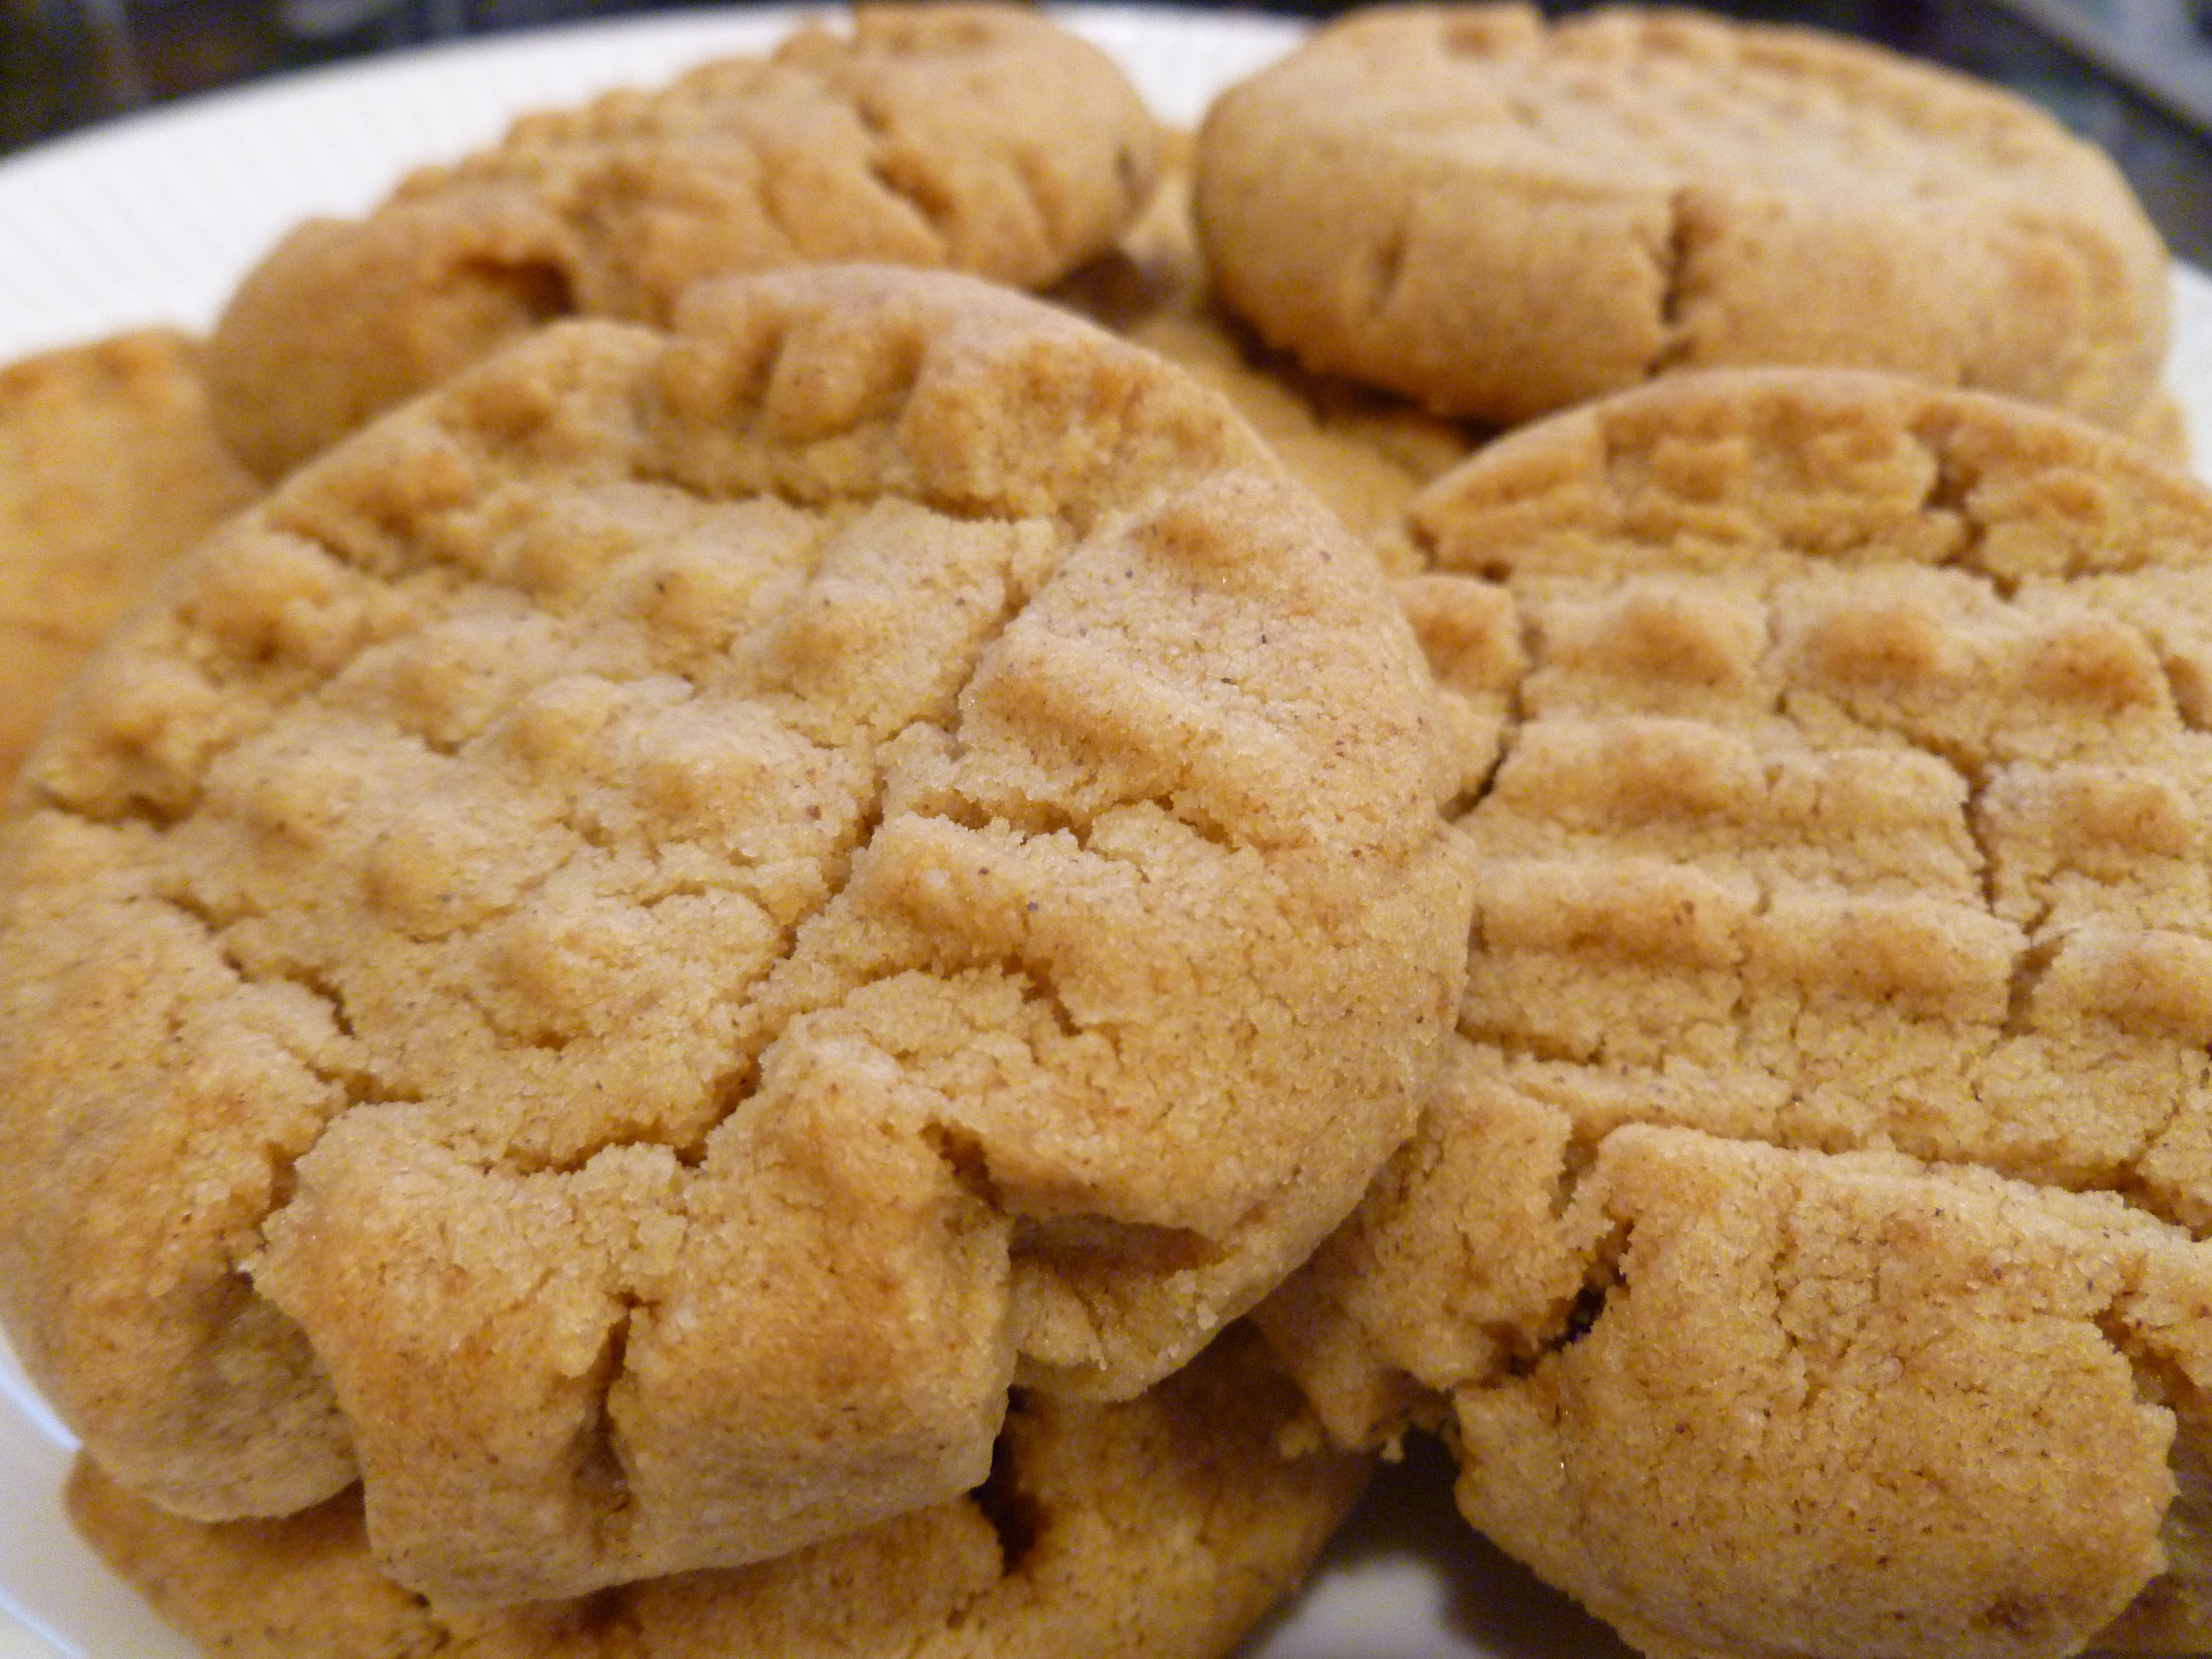 Cookies made with almond butter recipe